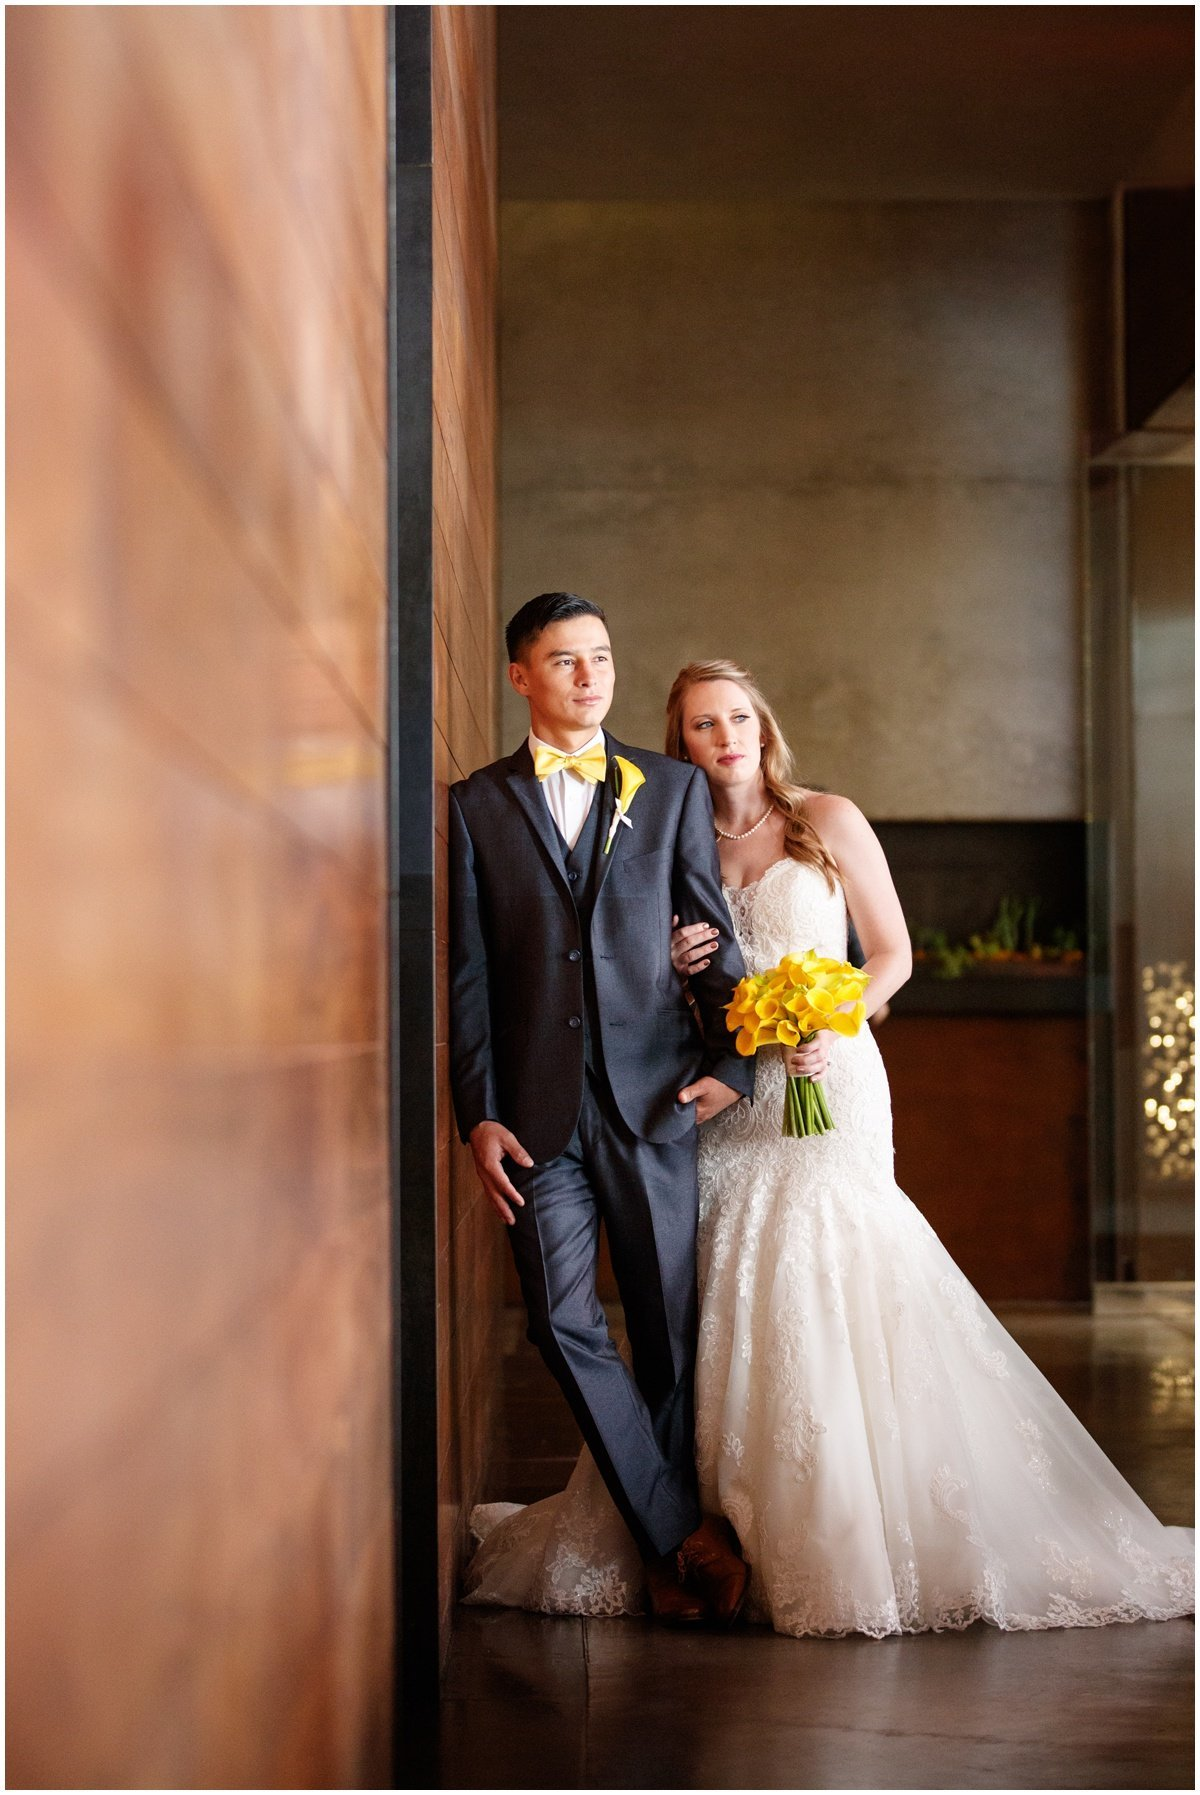 Austin wedding photographer w hotel wedding photographer bride groom full length